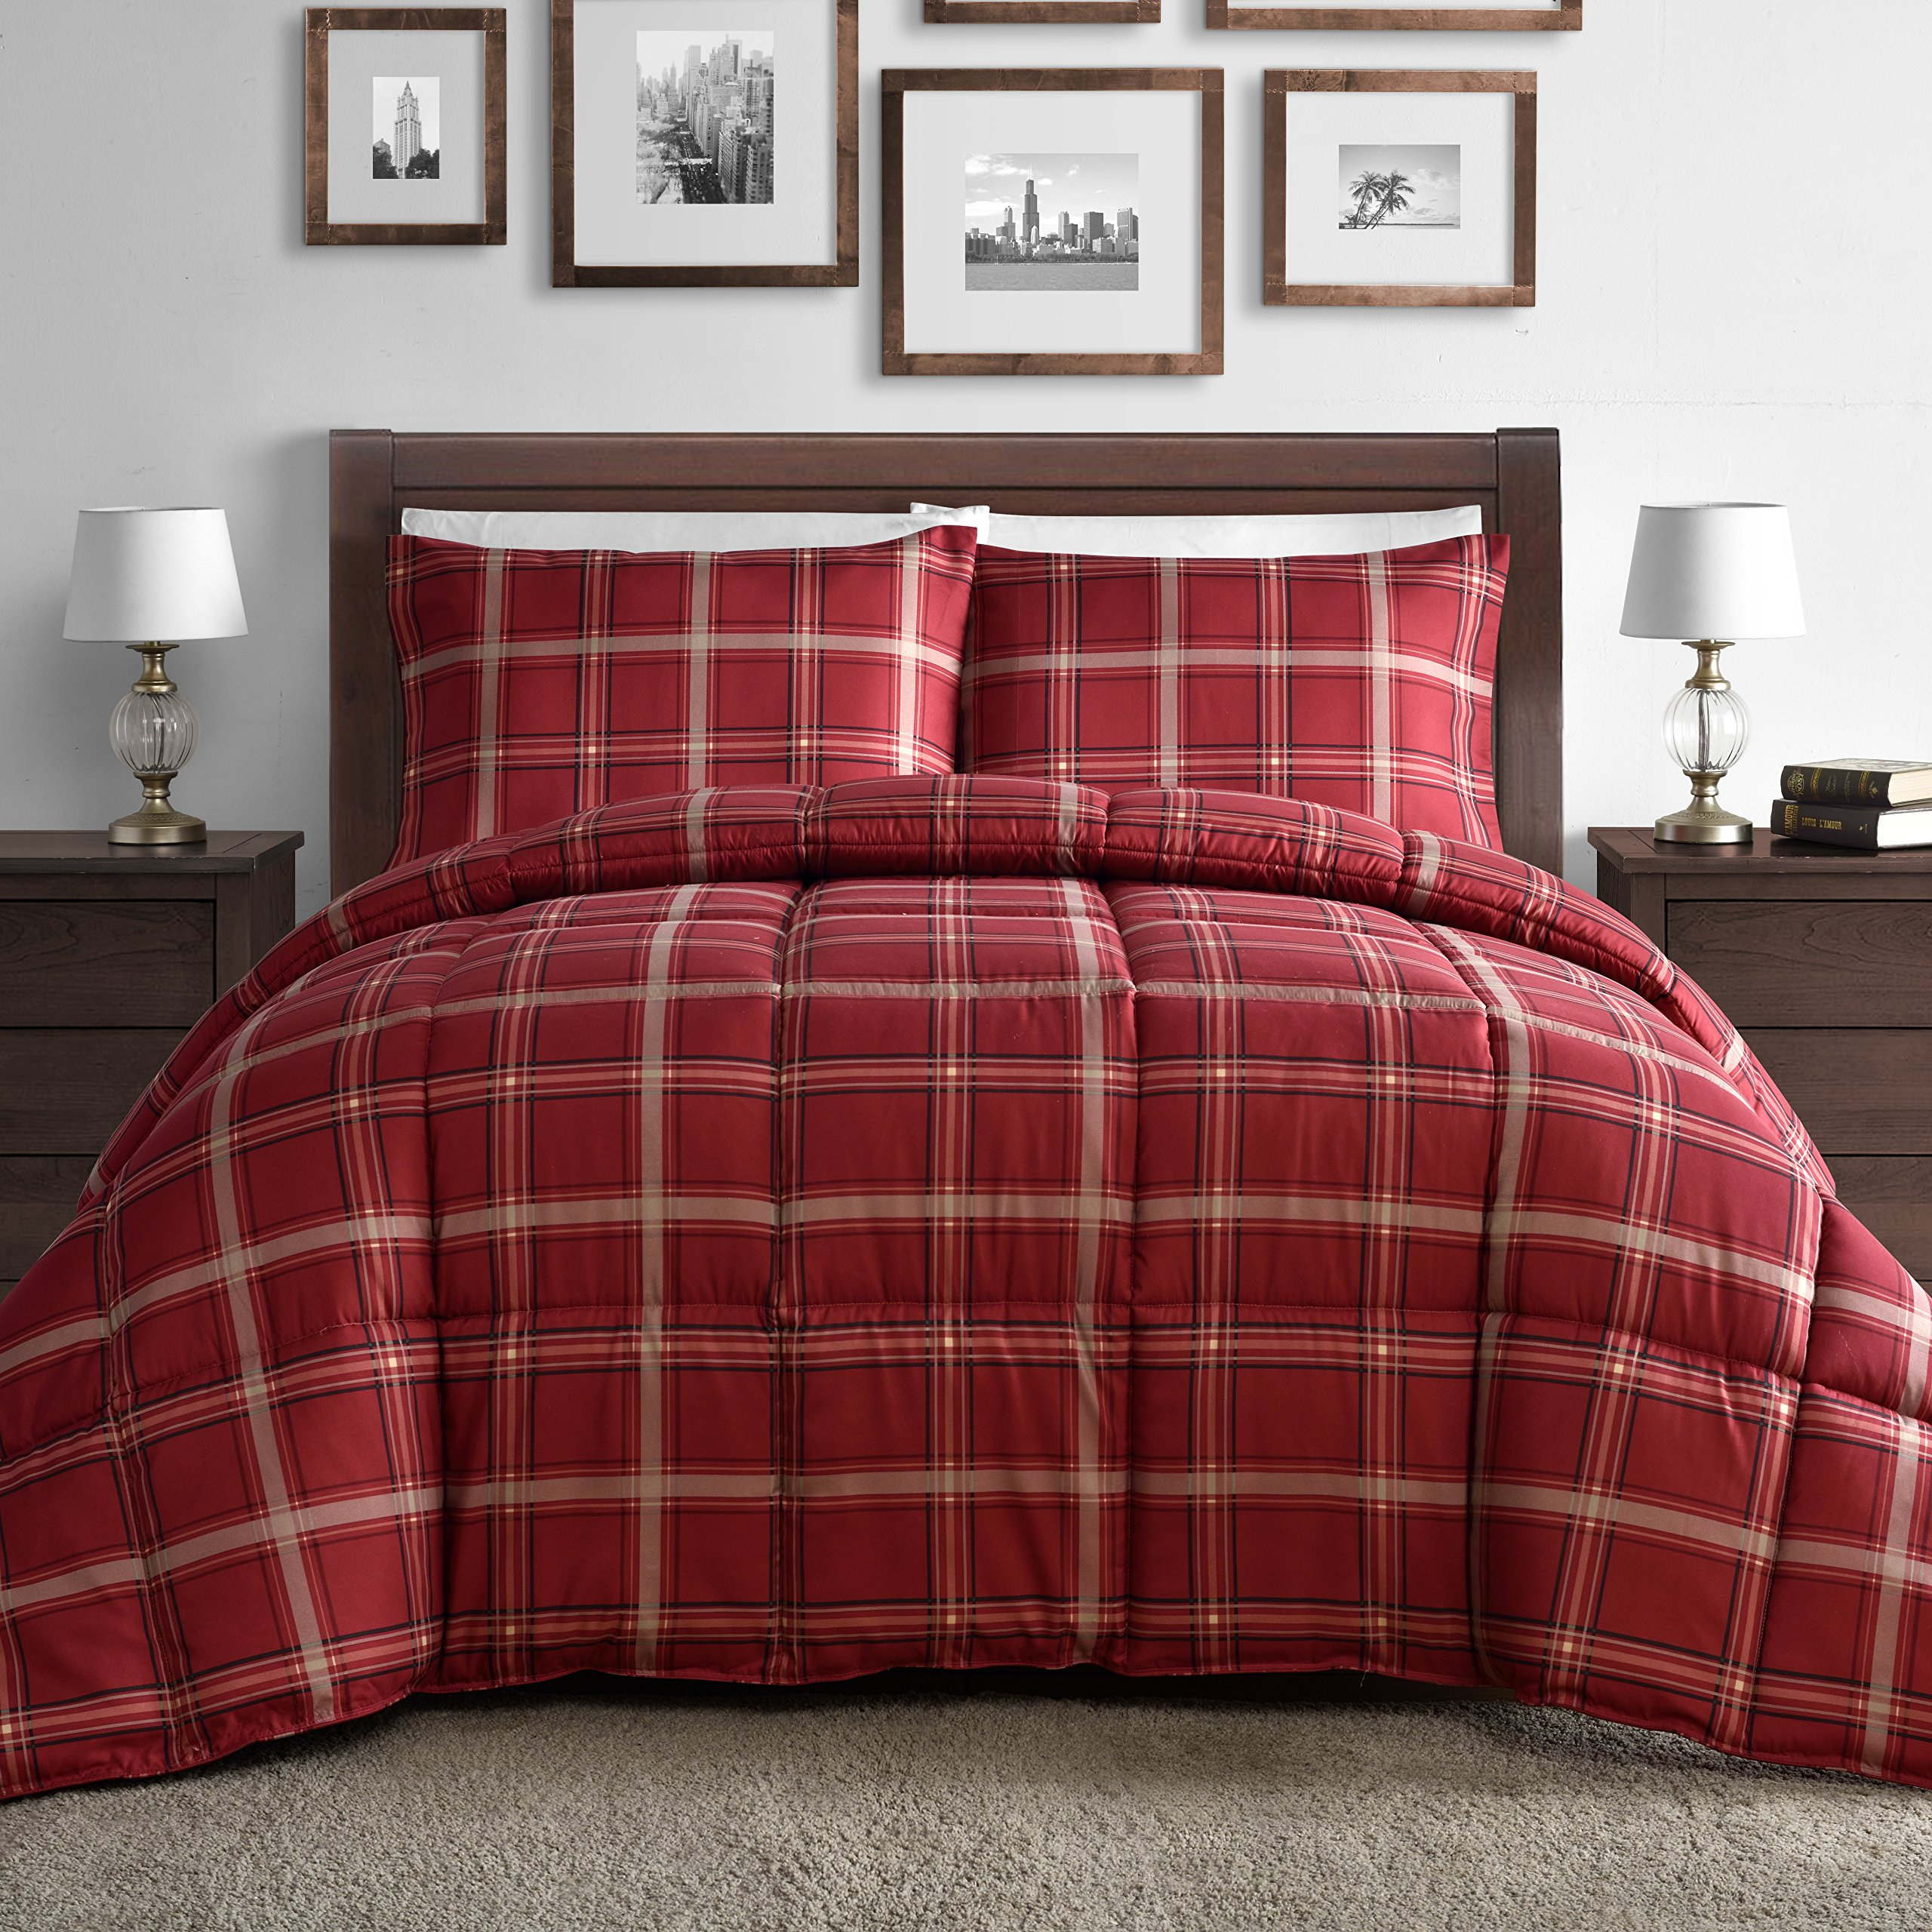 3 Piece forter Set Bedding Red Plaid Down Alternative Red King